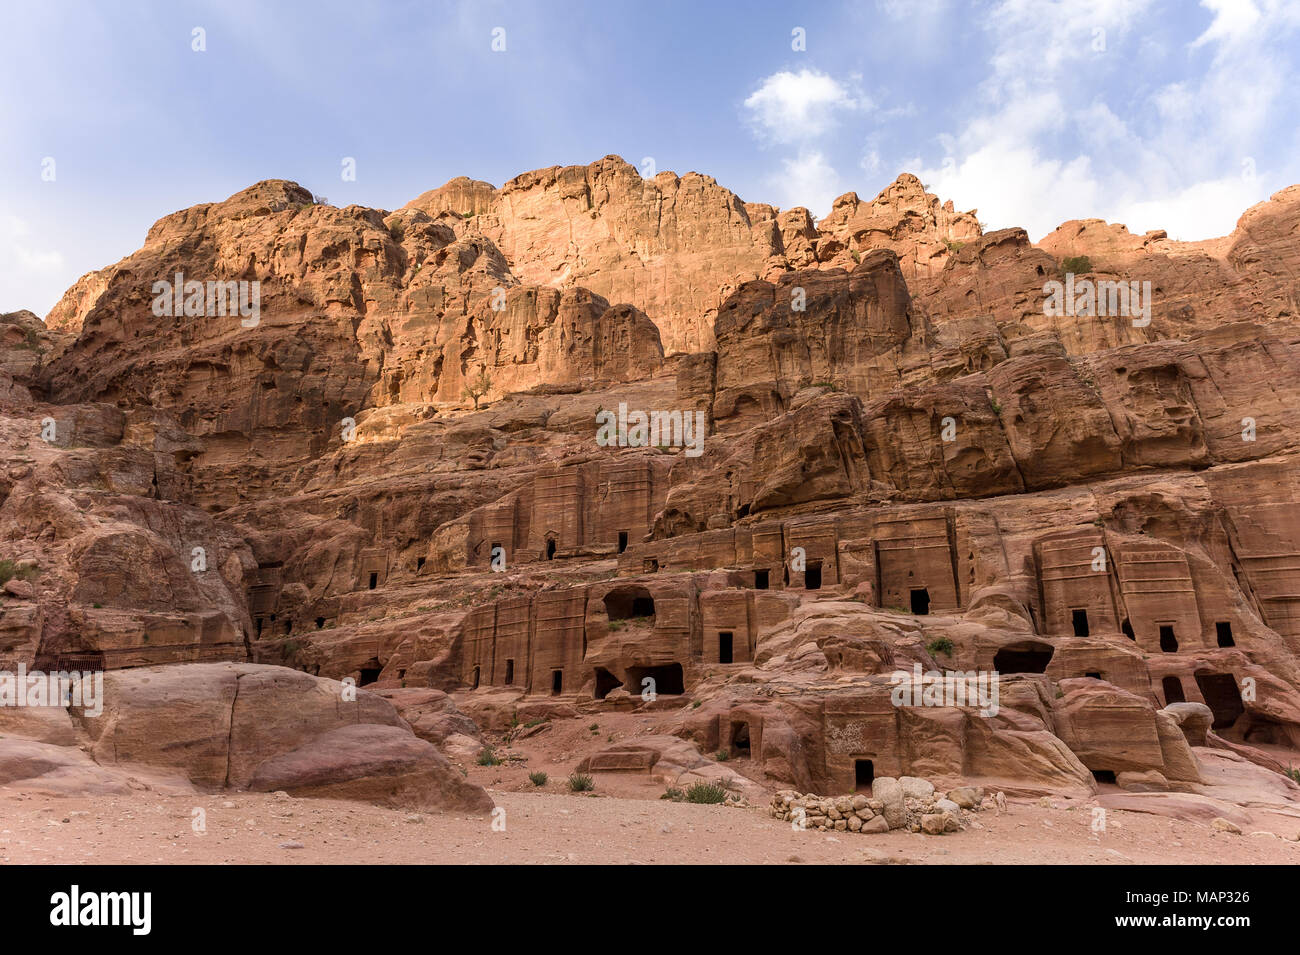 General view of the Royal Tombs in Petra, Jordan, The Urn Tombs. Stock Photo